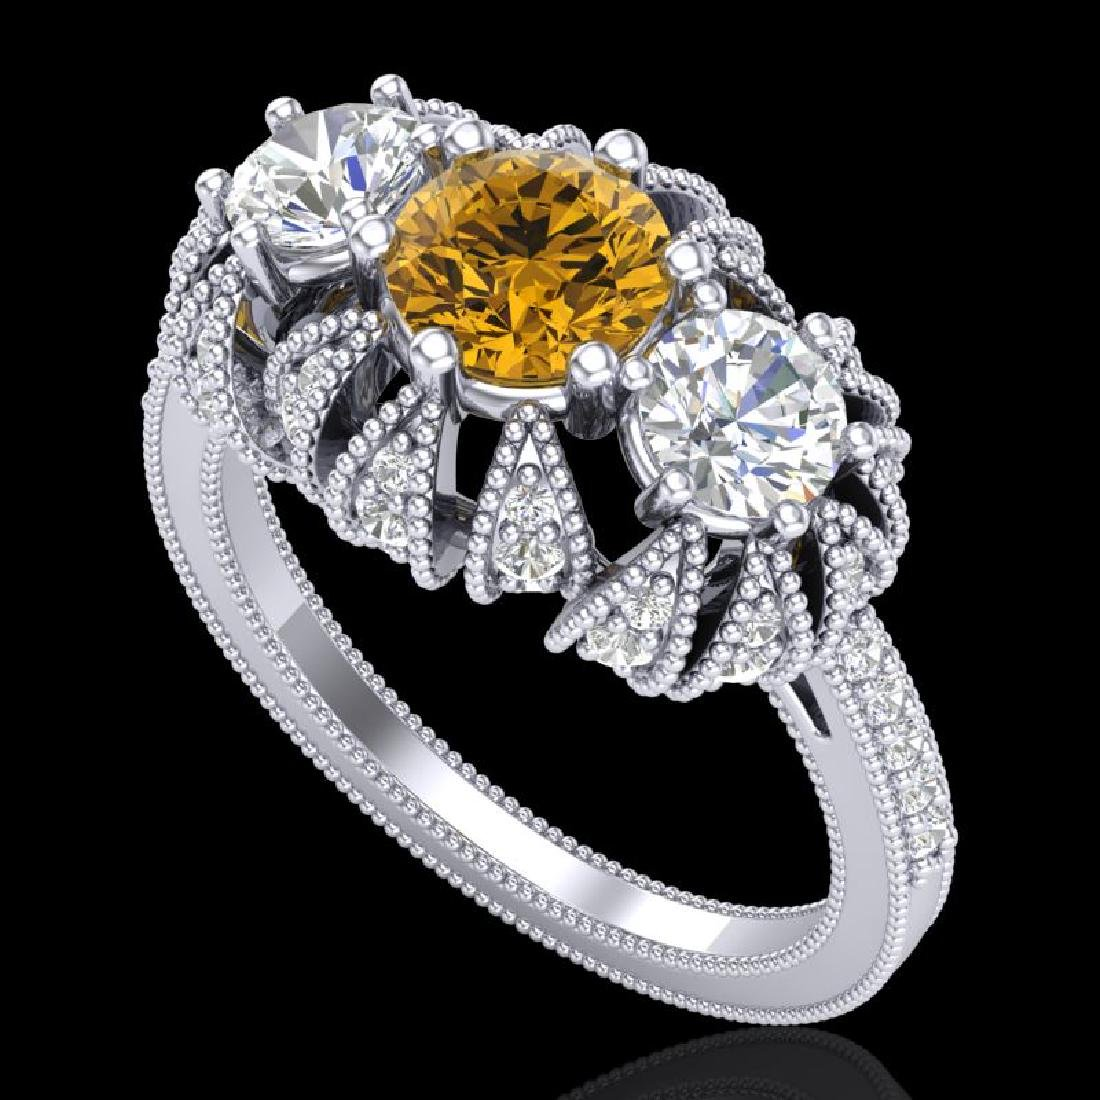 2.26 CTW Intense Fancy Yellow Diamond Art Deco 3 Stone